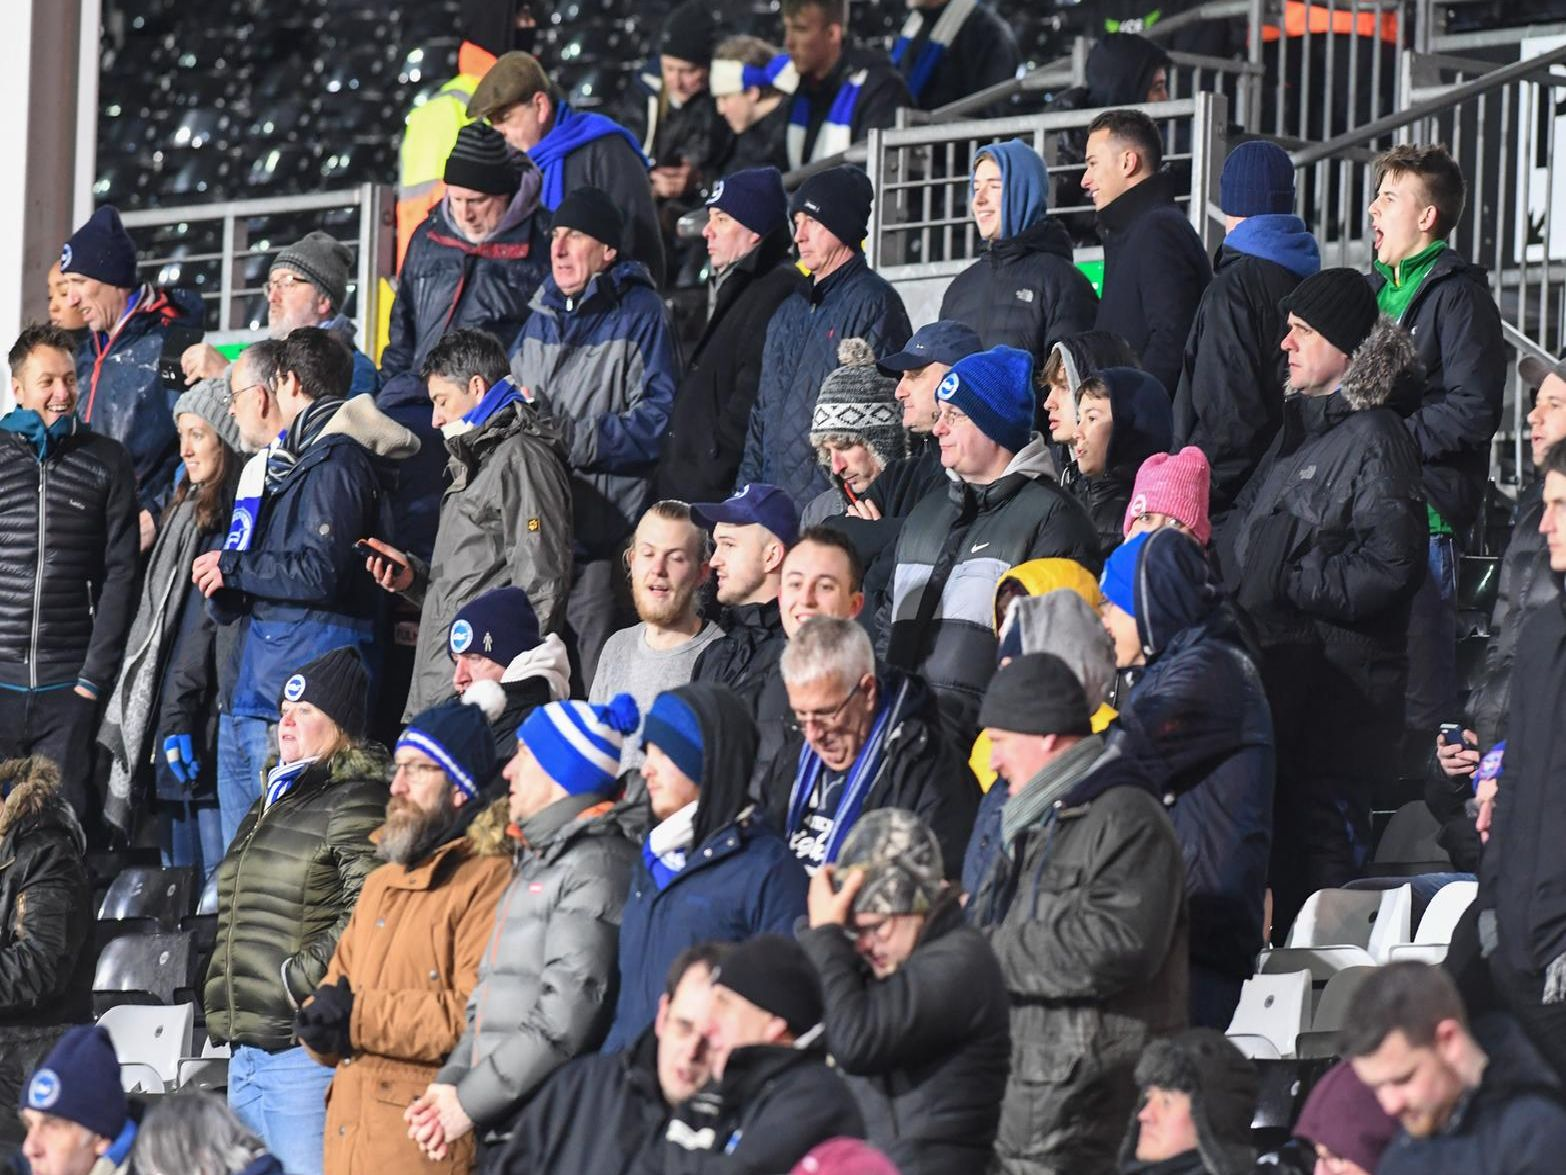 Brighton fans at Craven Cottage. Picture by PW Sporting Photography